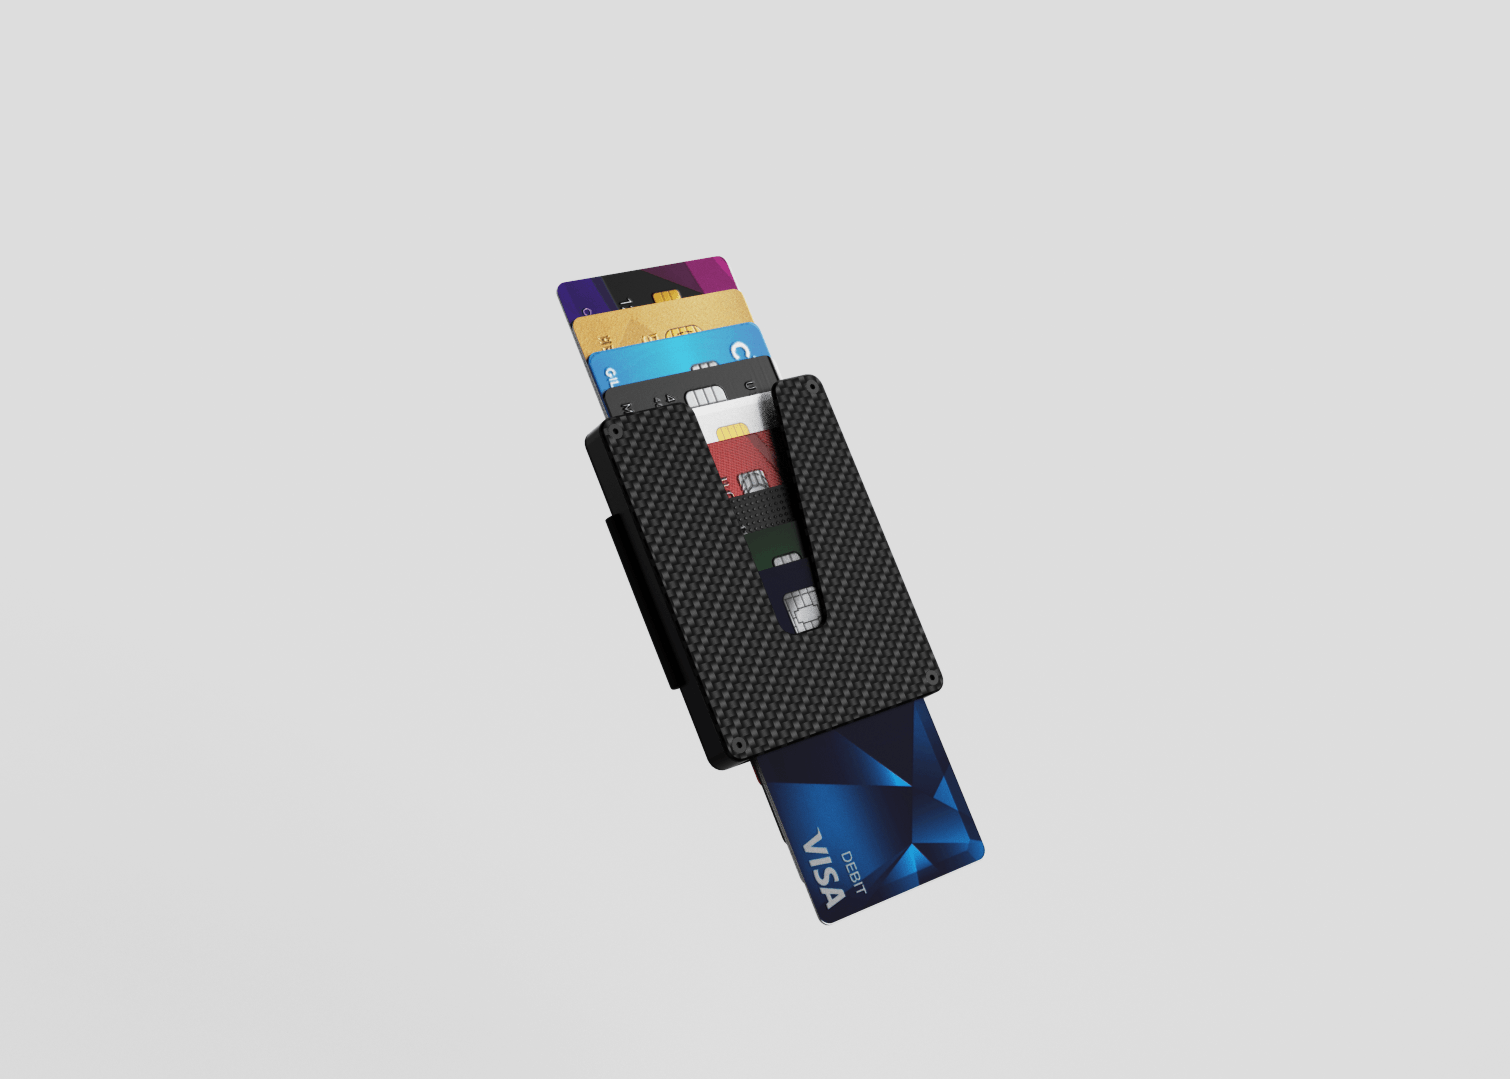 Vext Slim Wallet Wallet Sleek Life Design LLC Carbon Fiber Wallet